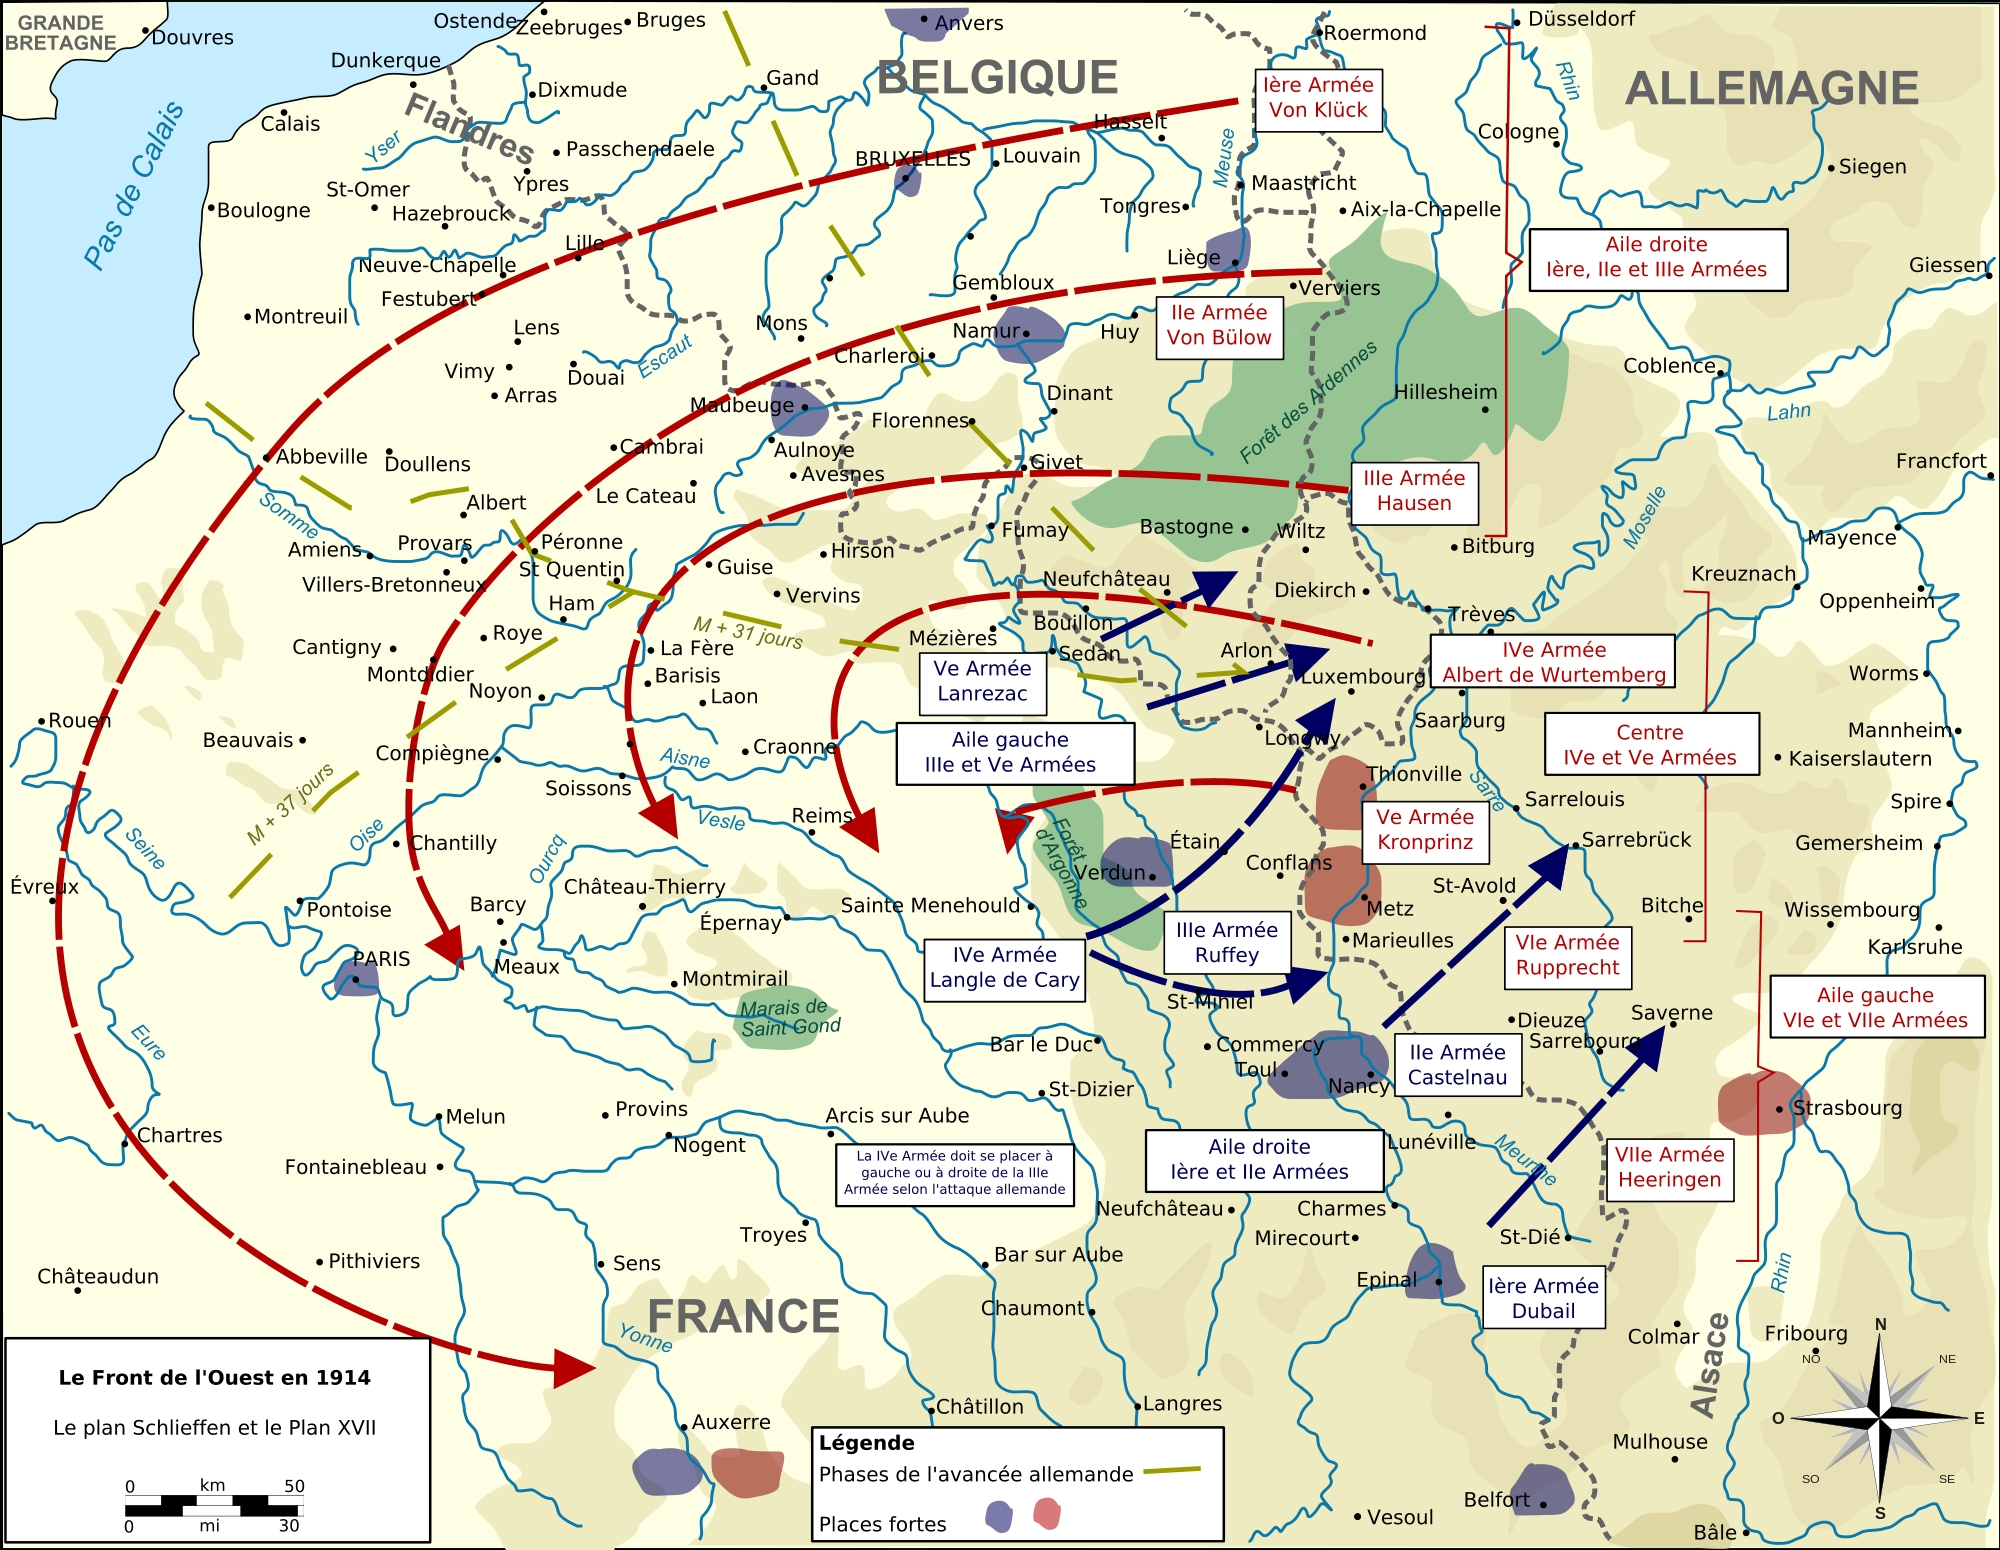 40 Maps That Explain World War I | Vox pertaining to Show Germany In World Map